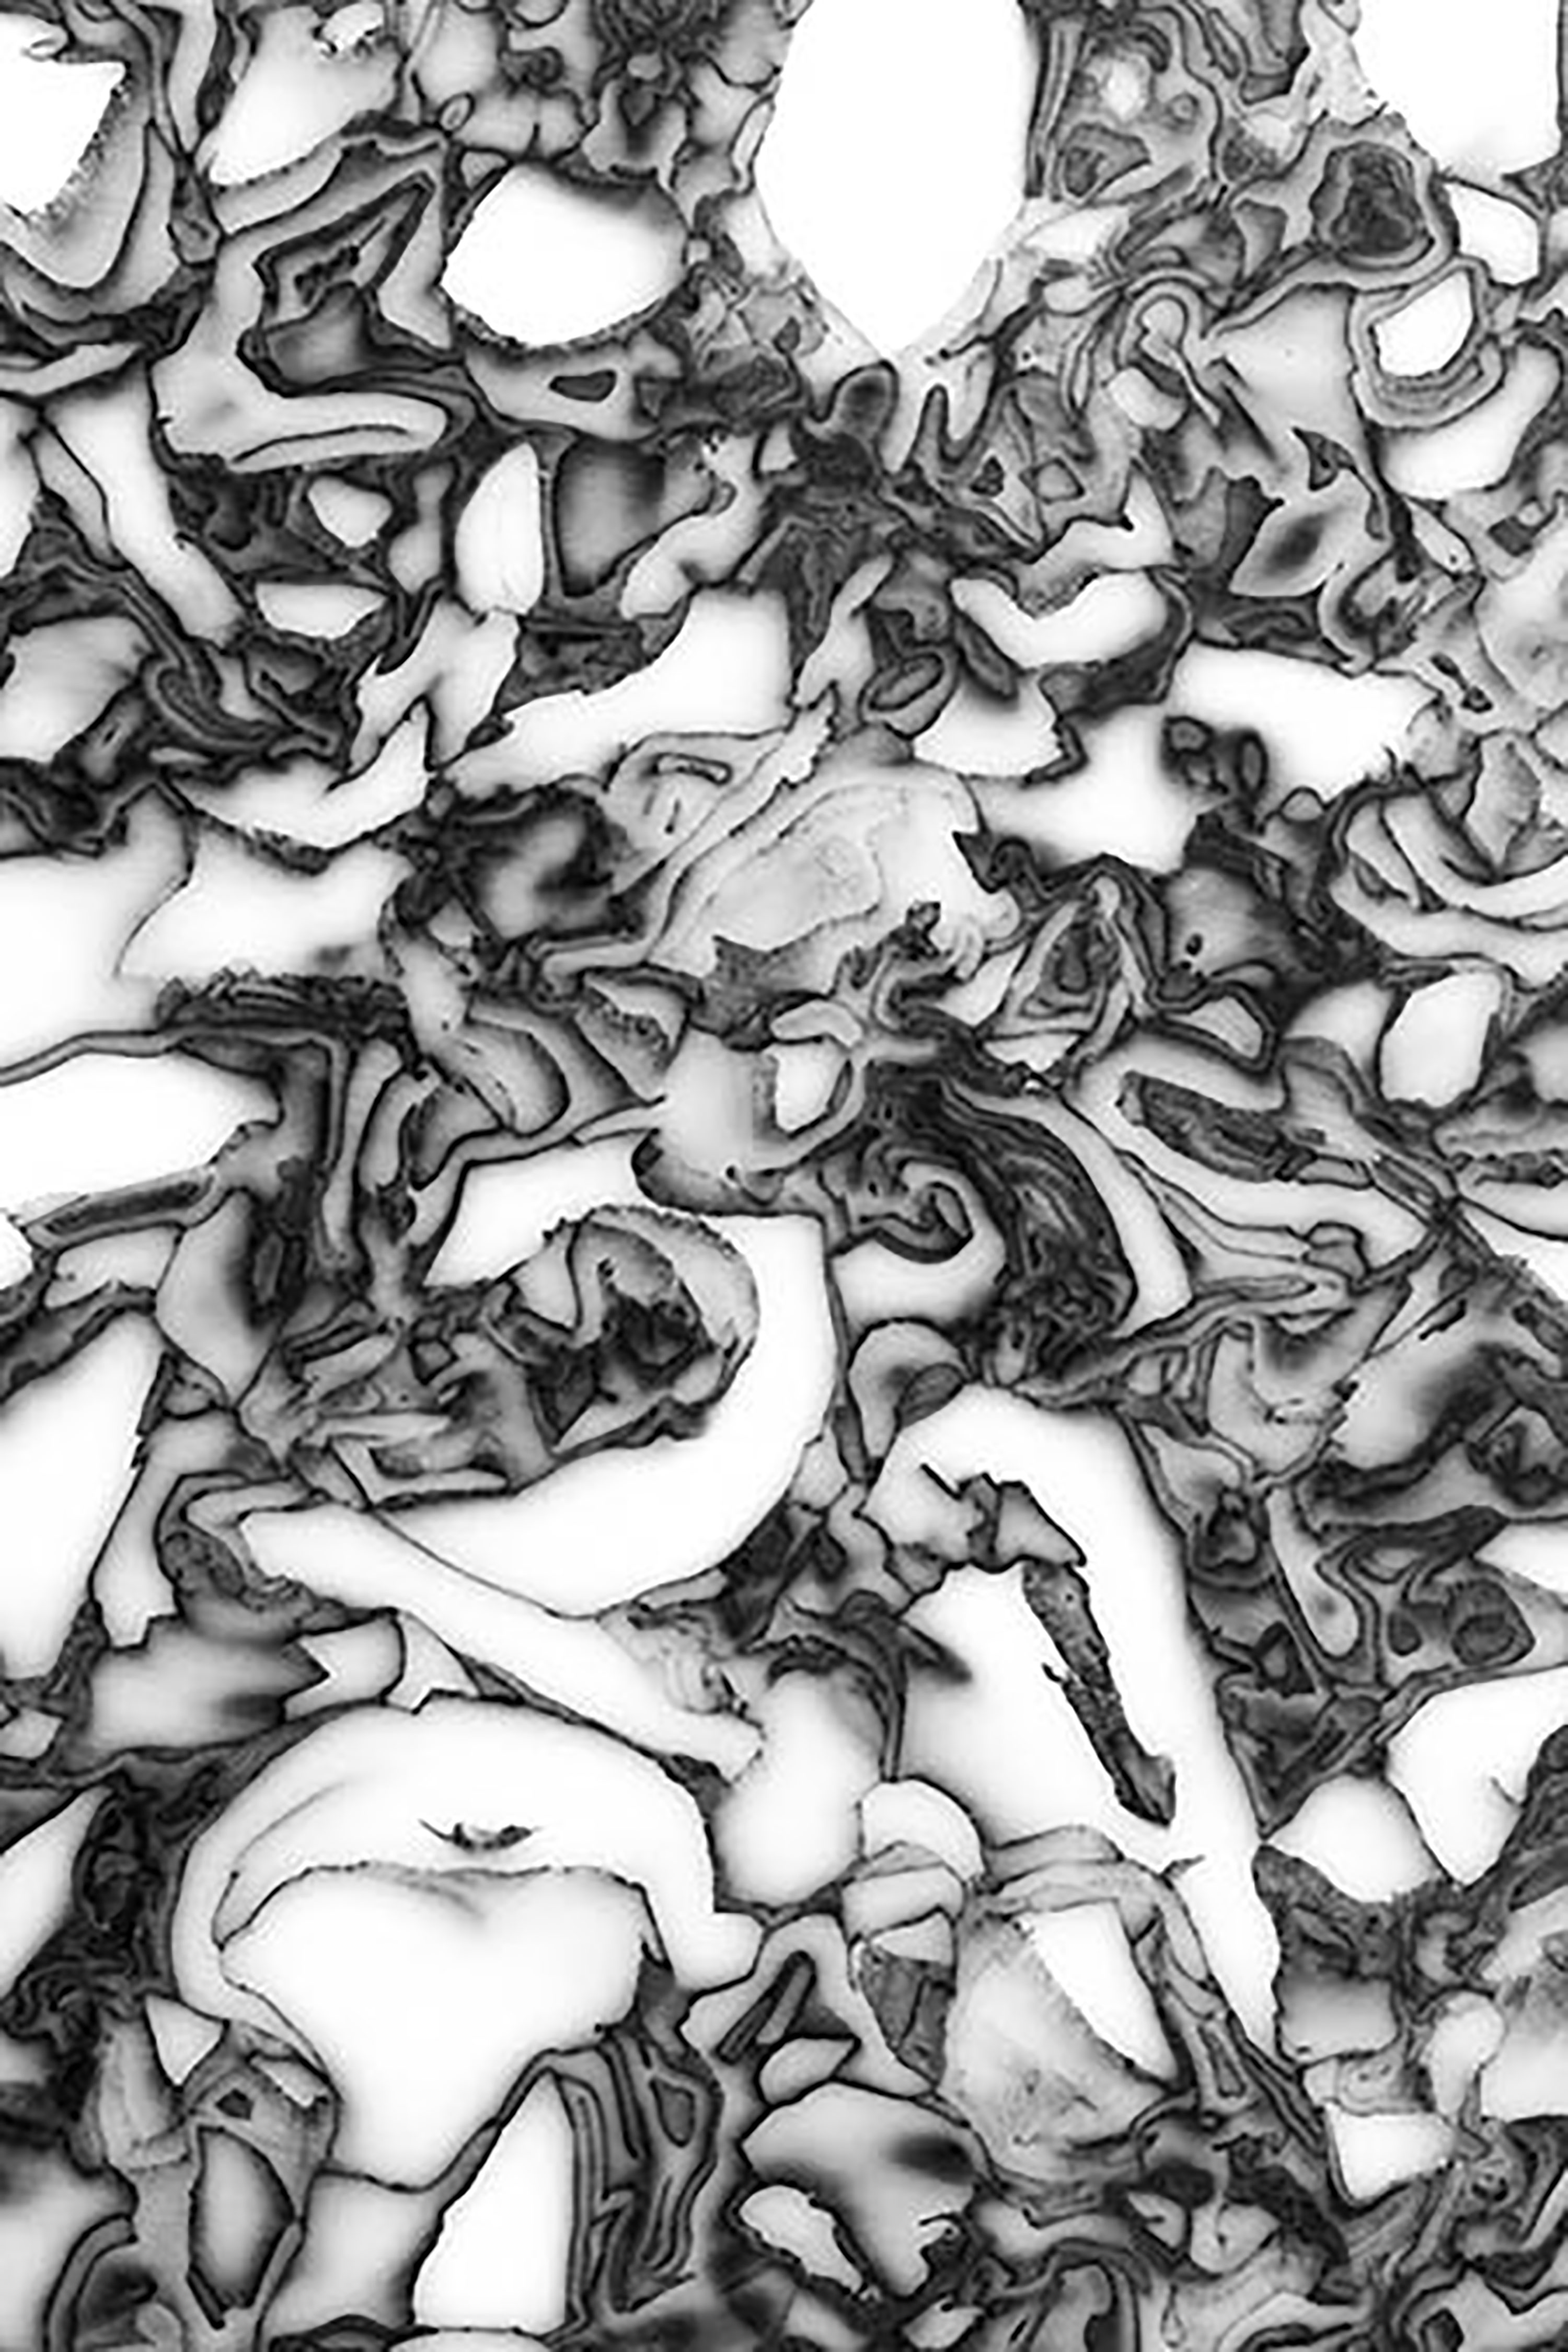 """Black Dapple Recycled Plastic - Black Dapple reminds many people of the cross-section of a cabbage, and many others of marble, yet we can't decide who is right. Playful yet sophisticated, Dapple's high contrast patterns give it a lively personality that evoke the material's millions of years of biological, geological and man-made processes. Dapple has been a long time coming, but we think it has been worth the wait.<p class=""""p2""""><span class=""""s1"""">Dapple is a High Density Polyethylene made from as many as 100-150 chopping boards or 16-58kg of plastic packaging. Dapple is hard, dense and rigid as well as being 100% waterproof, rot-proof and strong weather resistance. Furthermore, this is a food-grade material and can be used for the preparation of wet foods in the kitchen. With modern scratch resistance that can in turn be refinished, Dapple plastic has plenty of life in it. In addition, Dapple can be heat formed into all types of bespoke shapes with a choice of matt or gloss finishes, as well as the versatility of being machined, drilled, cut (router, CNC), water cut and fixed using adhesives and screws, making it perfect for any type of project.</span></p> 